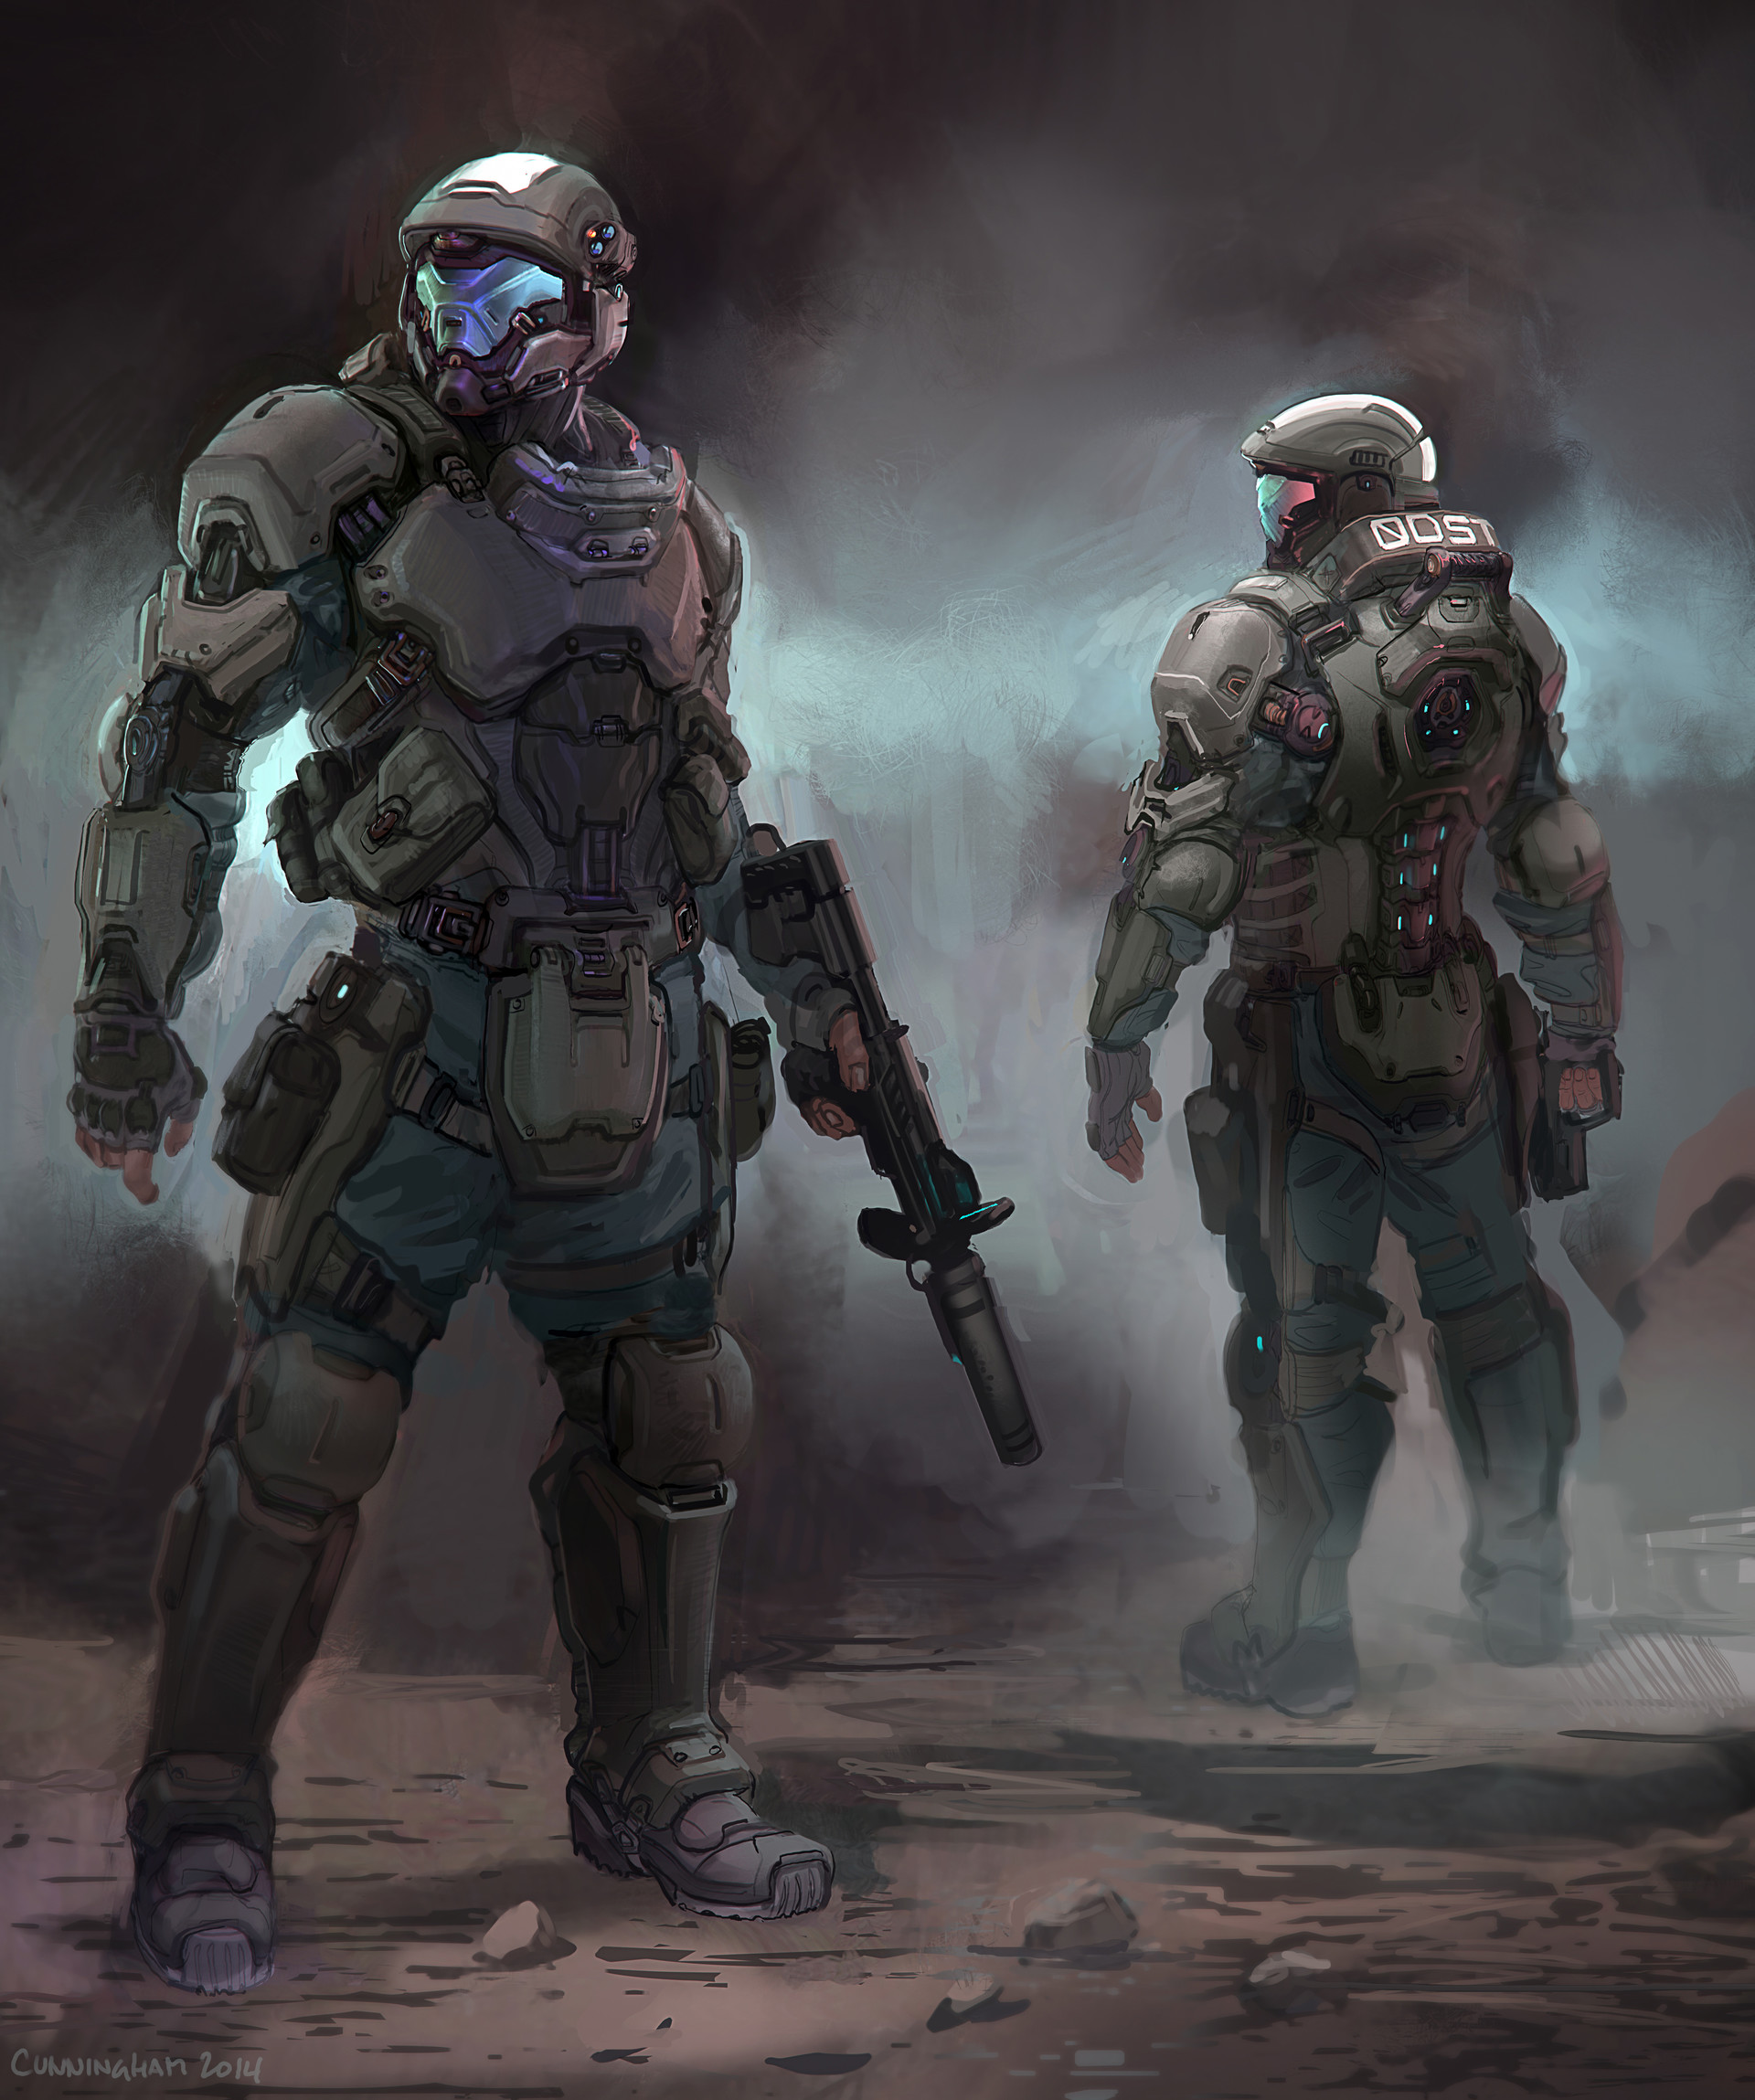 Halo 5 guardians odst by alex j cunningham halo halo 5 guardians odst by alex j cunningham publicscrutiny Image collections